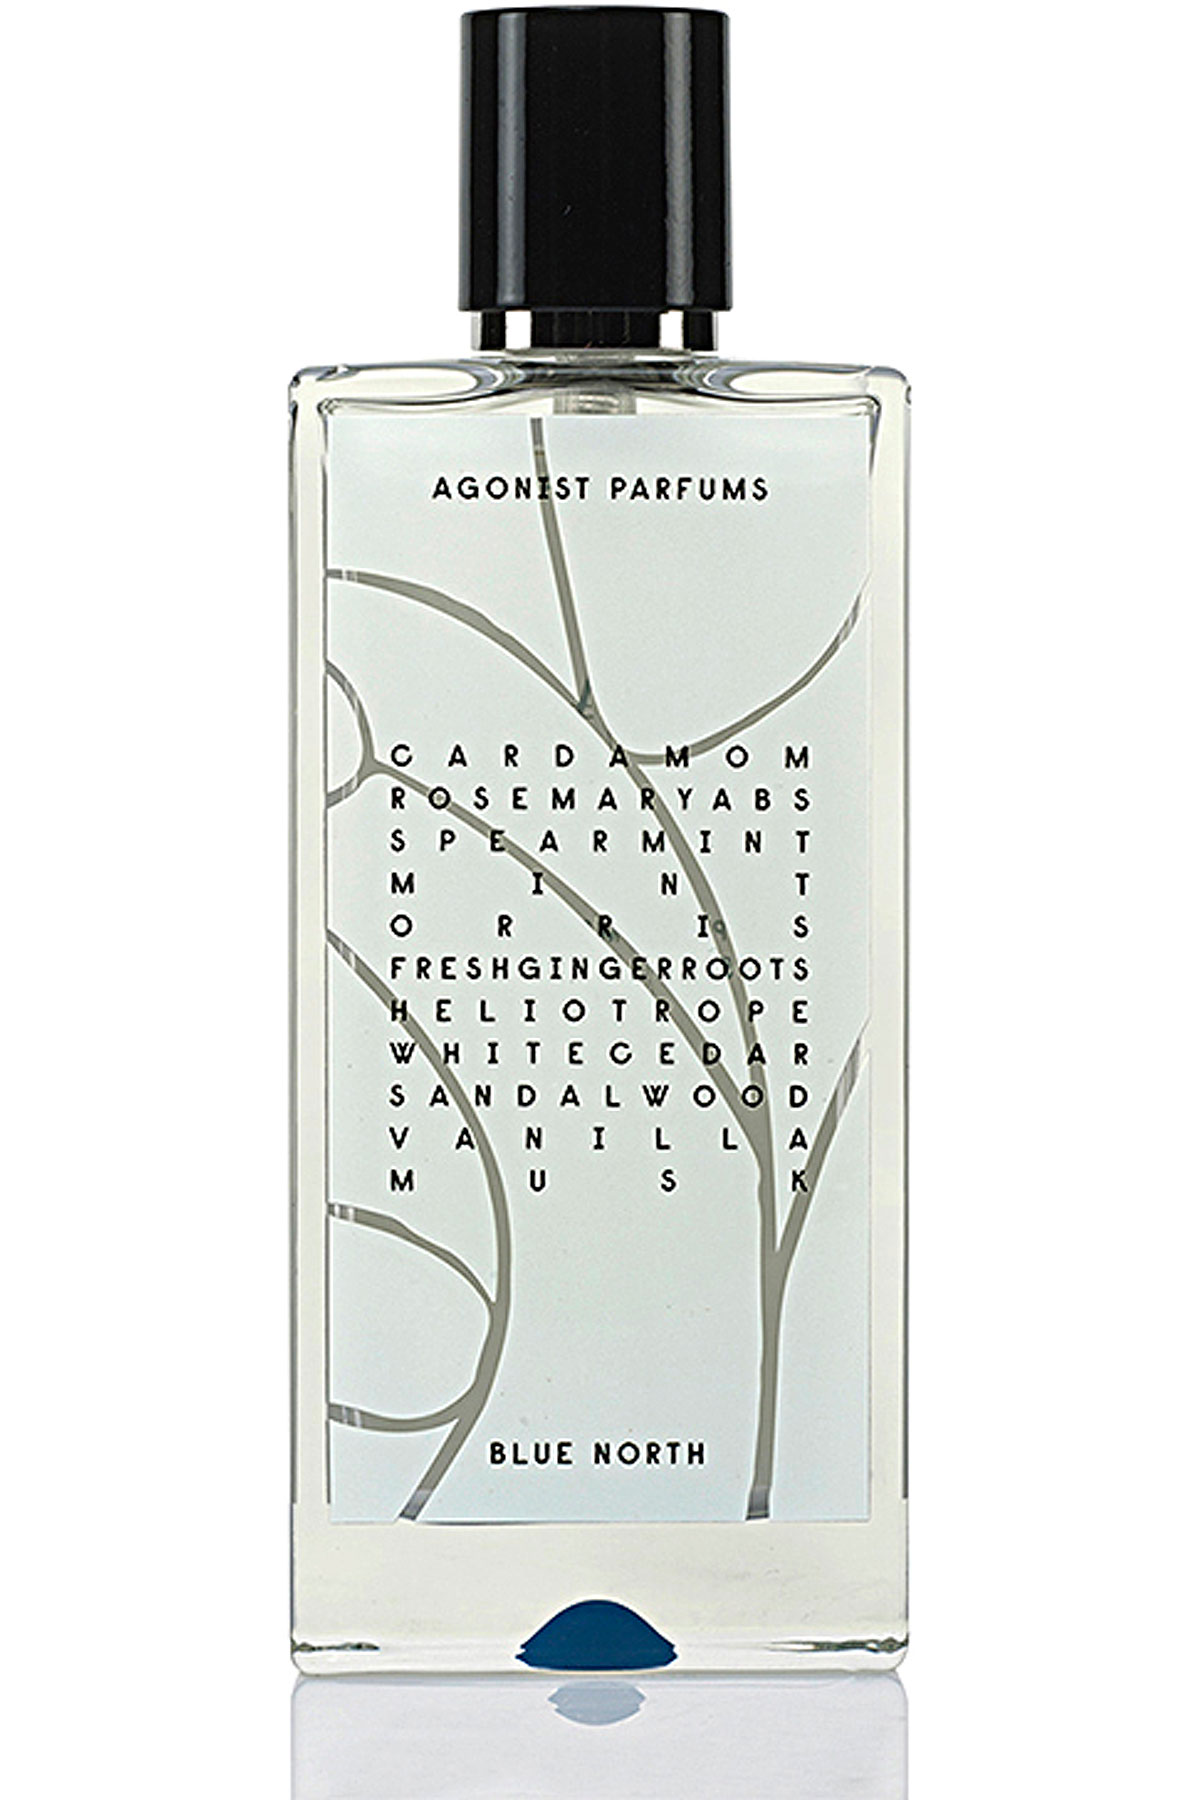 Agonist Fragrances for Men, Blue North - Eau De Parfum - 50 Ml, 2019, 50 ml